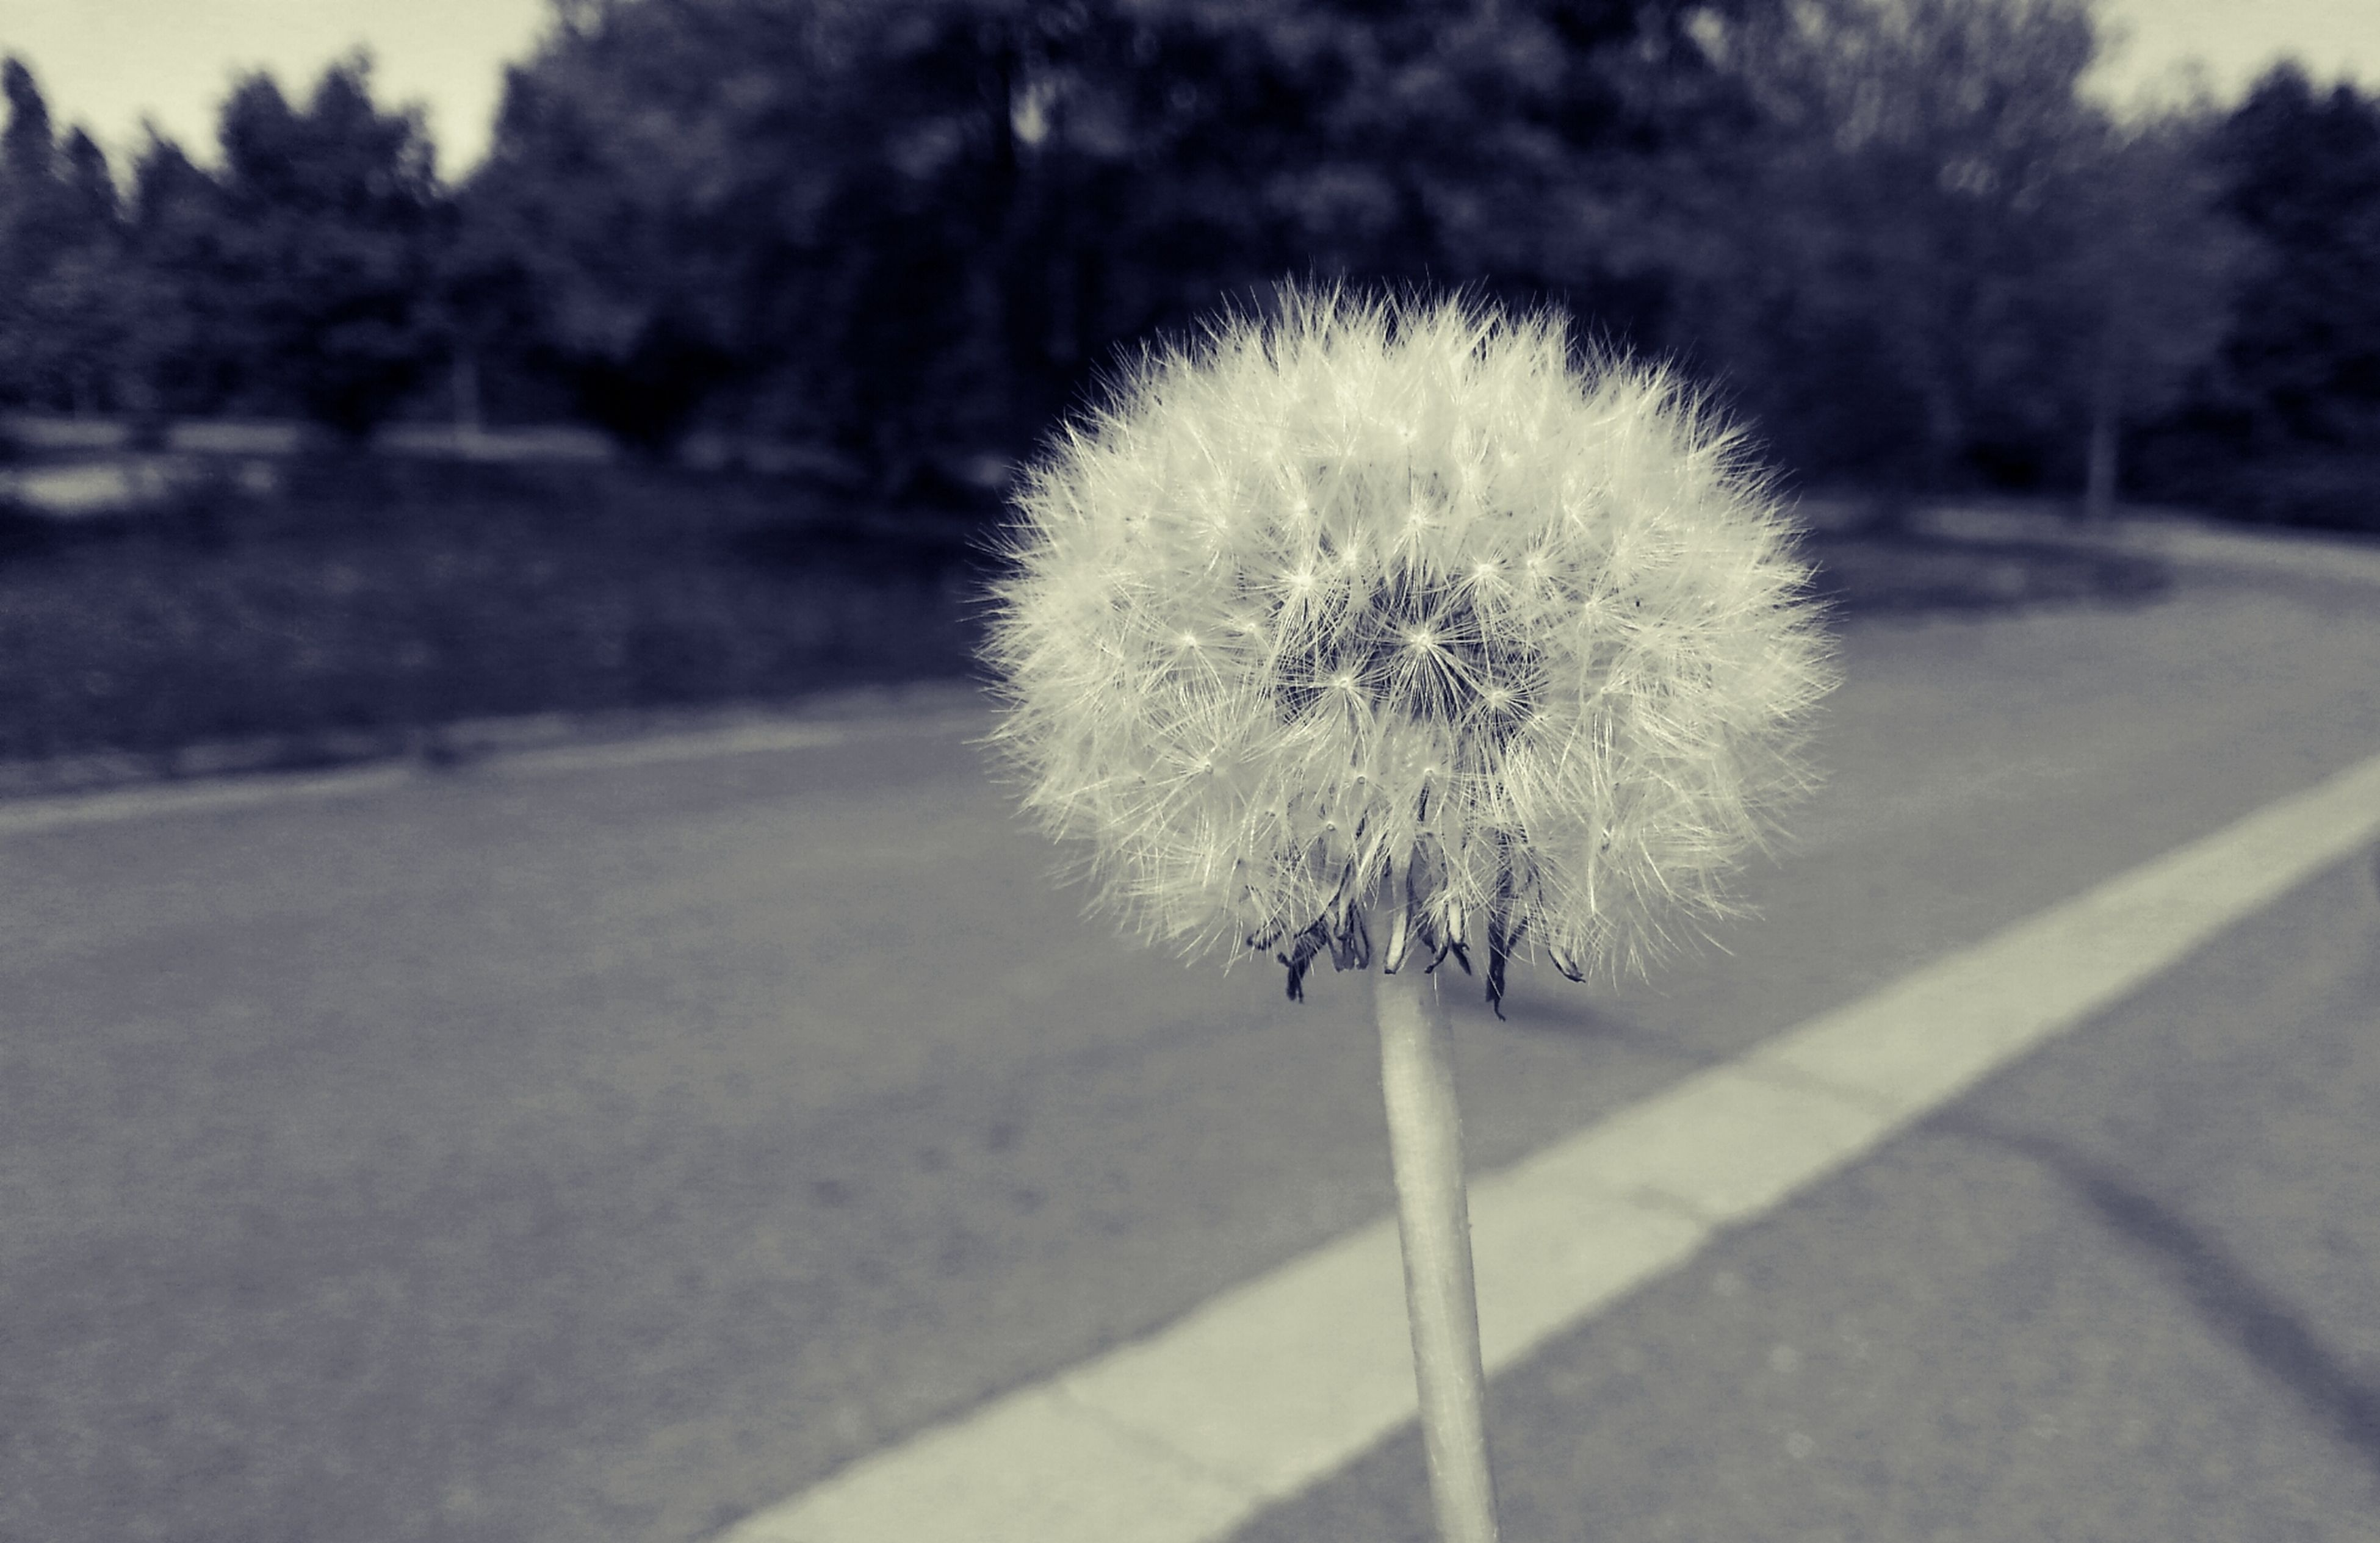 flower, dandelion, fragility, growth, flower head, freshness, focus on foreground, beauty in nature, nature, single flower, close-up, stem, white color, softness, plant, outdoors, day, in bloom, no people, tree